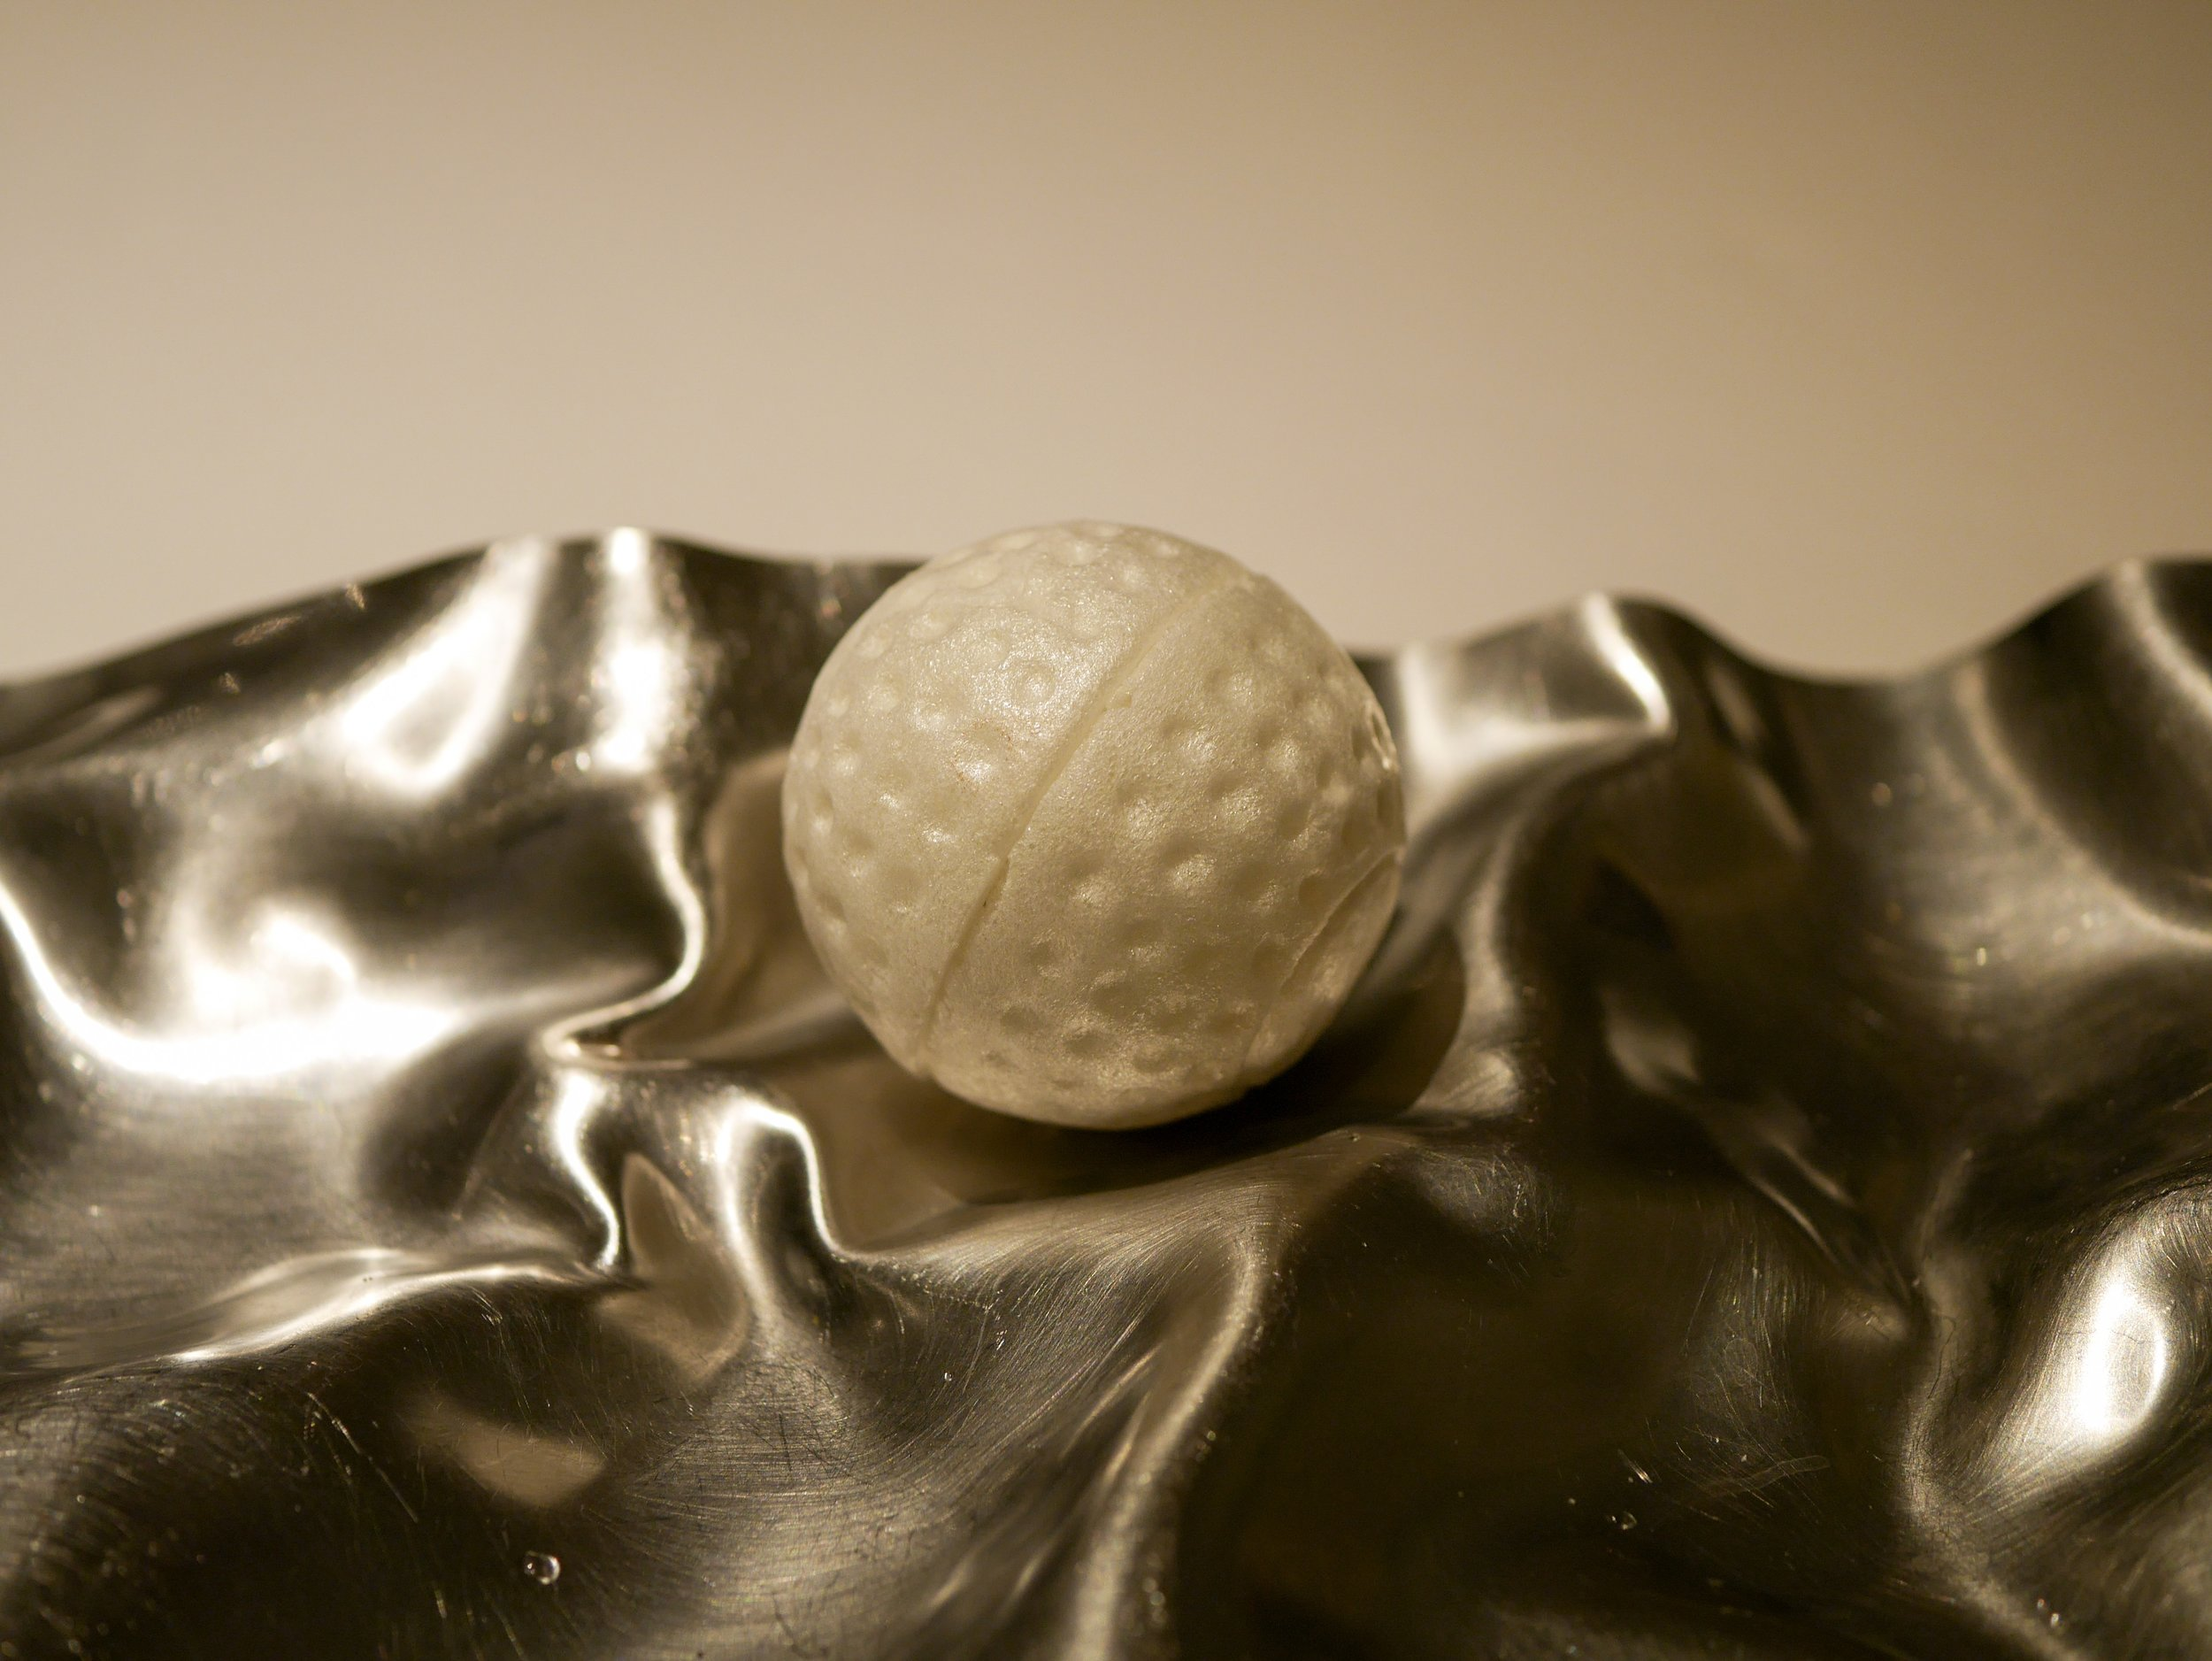 Rice cake golf ball with coconut